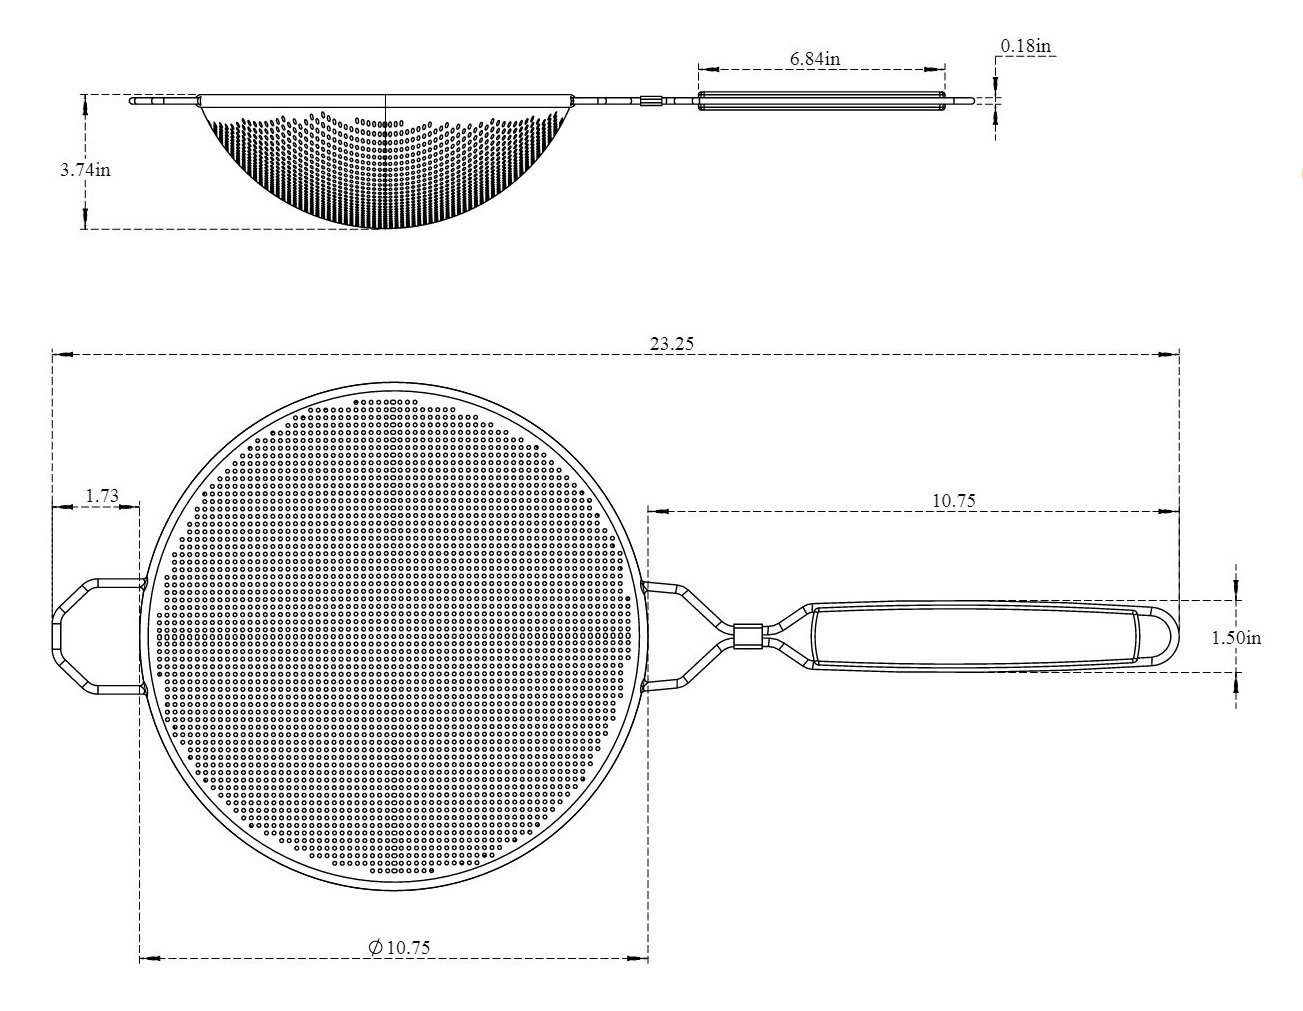 Krome 10.75'' Stainless Steel Double Mesh Strainer with Wooden Handle C793